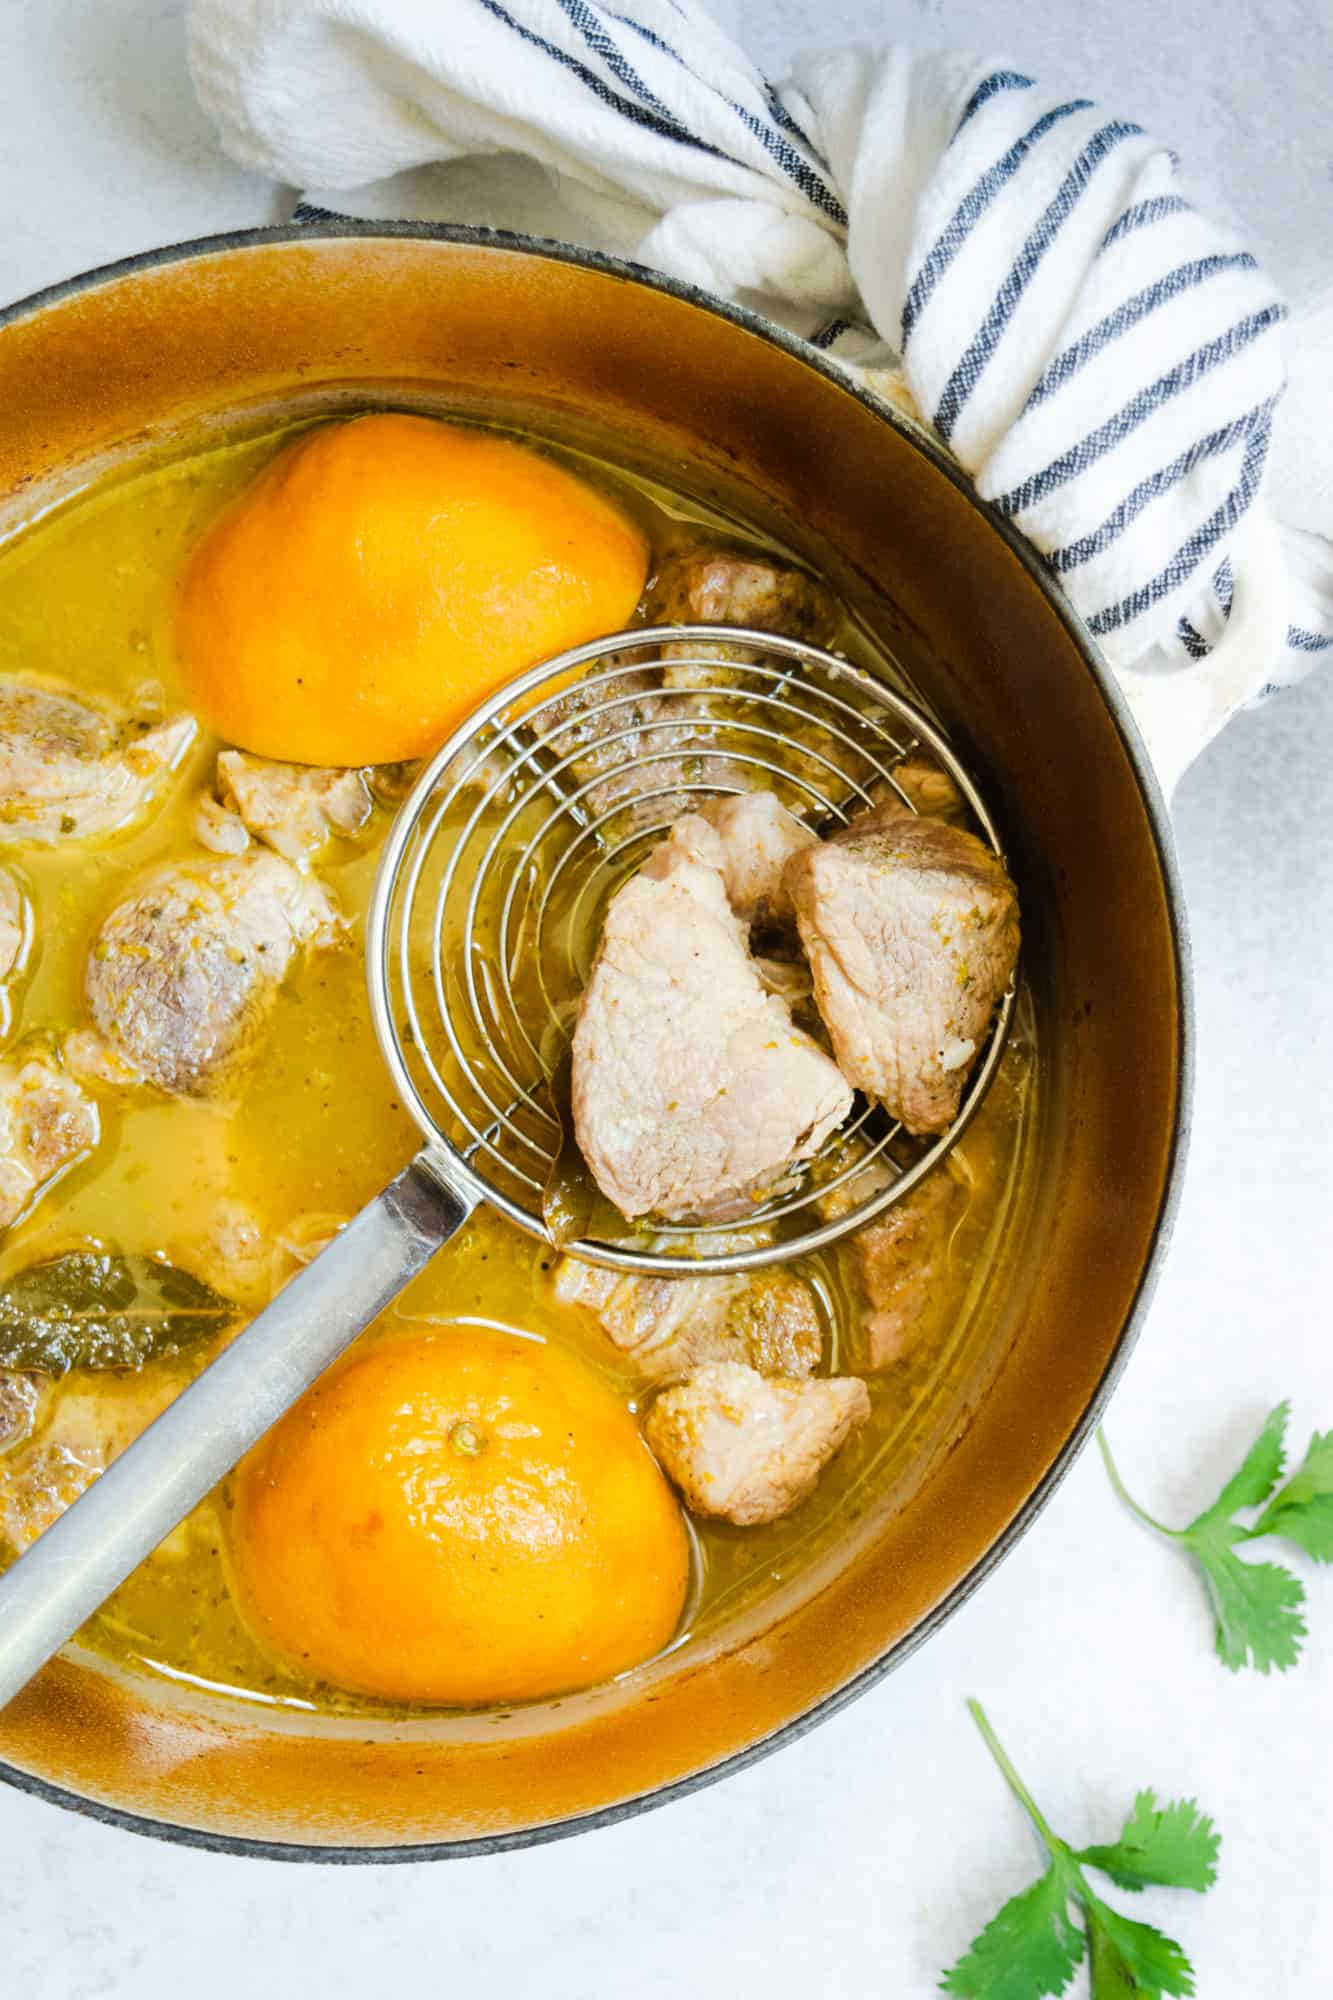 cooked pork carnitas with a skimmer in a pot of oranges and pork